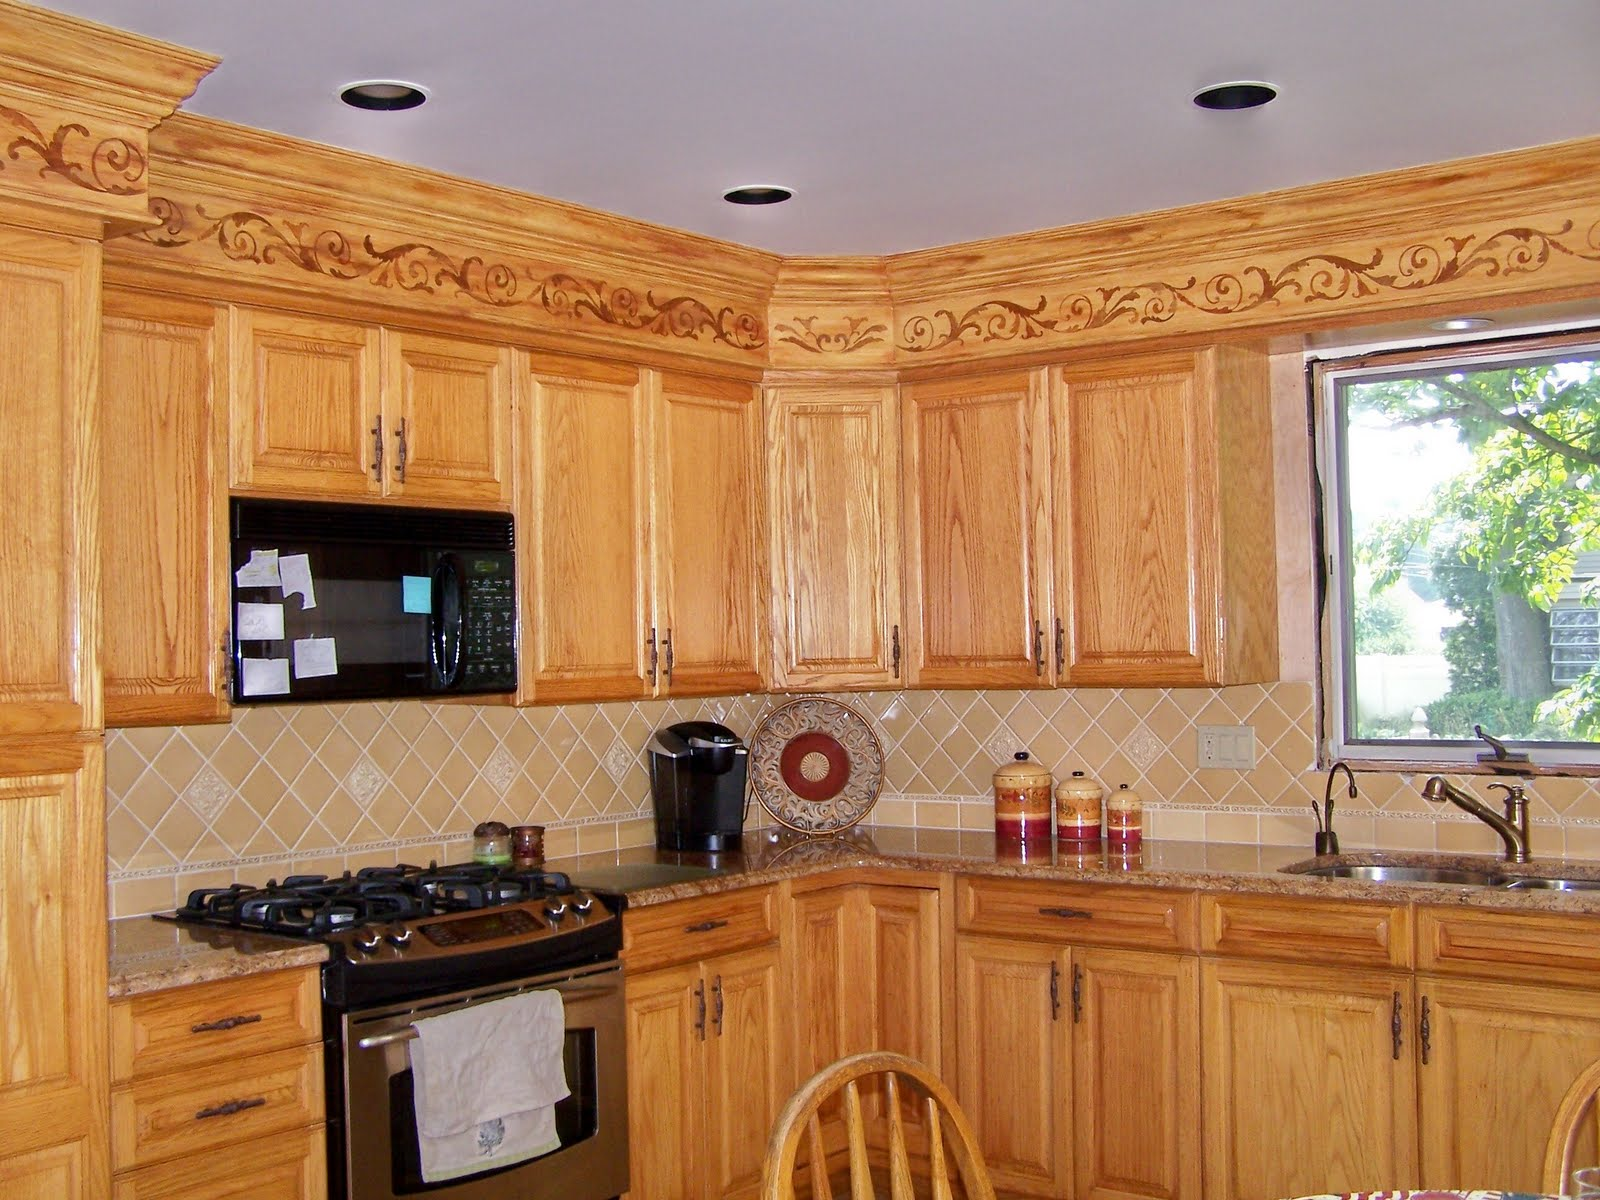 Kitchen Cabinet Makeover : Kitchen Cabinet Makeover: From Drab to Fab - The Colorful BeeThe ...